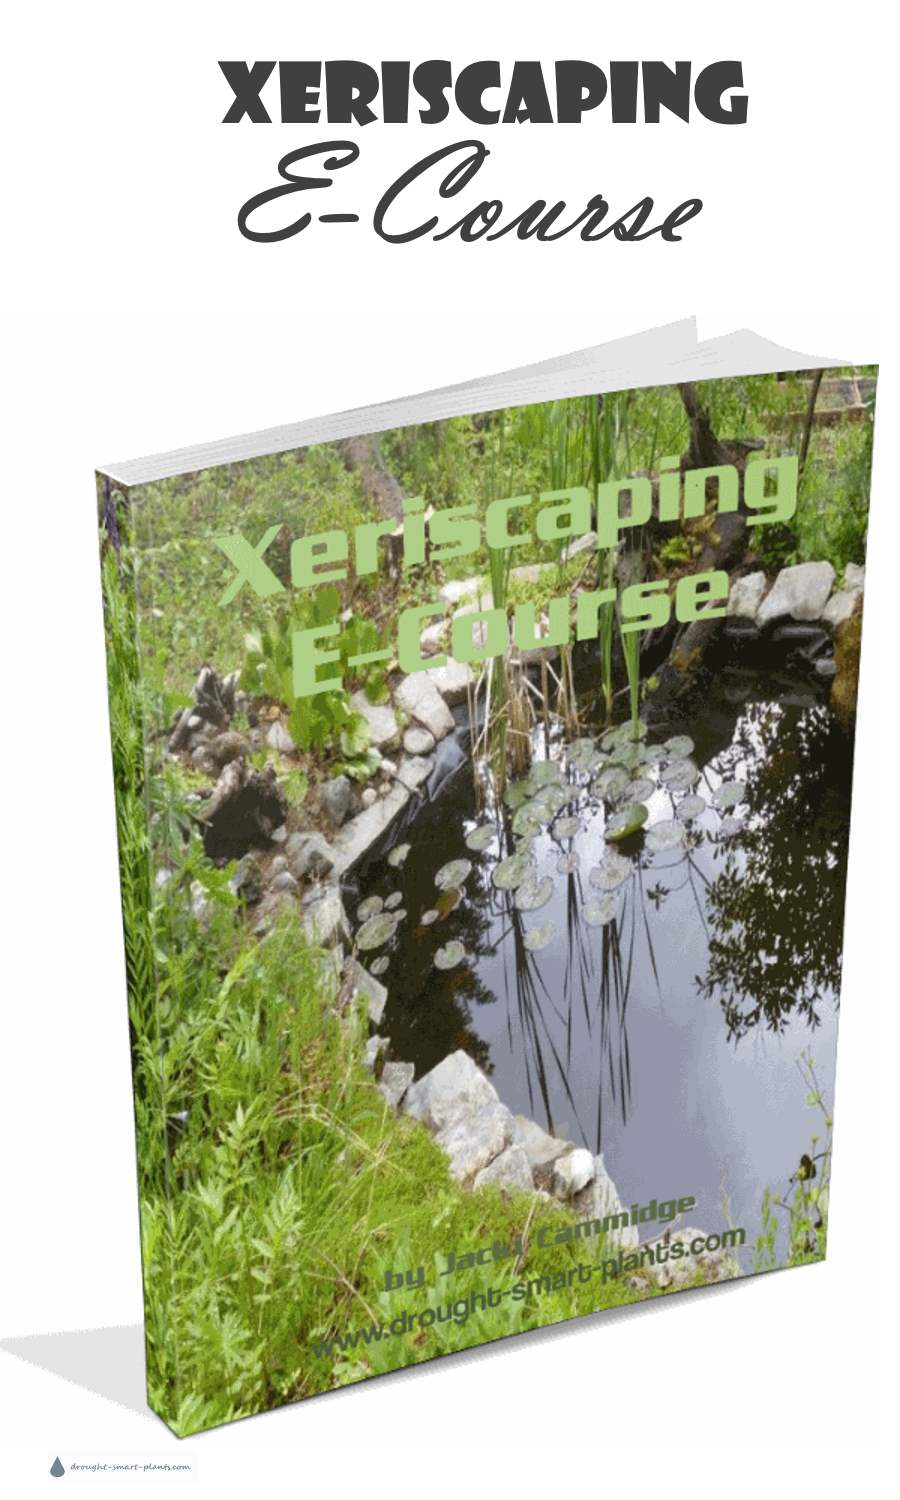 Xeriscaping E-Course - download your copy here...